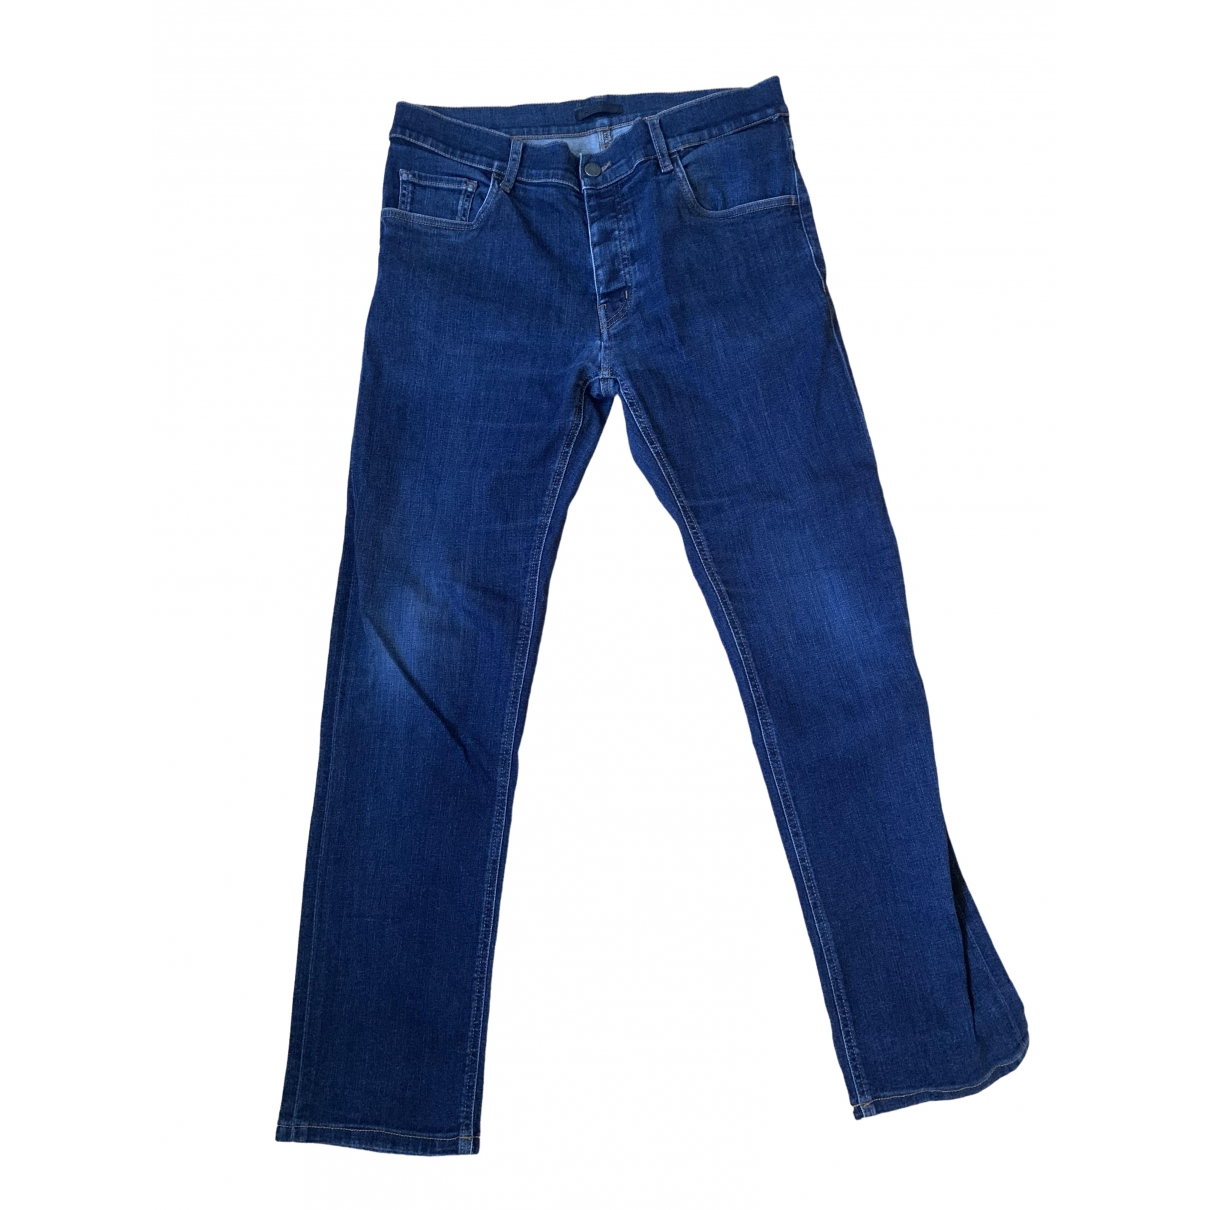 Prada \N Blue Cotton Jeans for Men M International